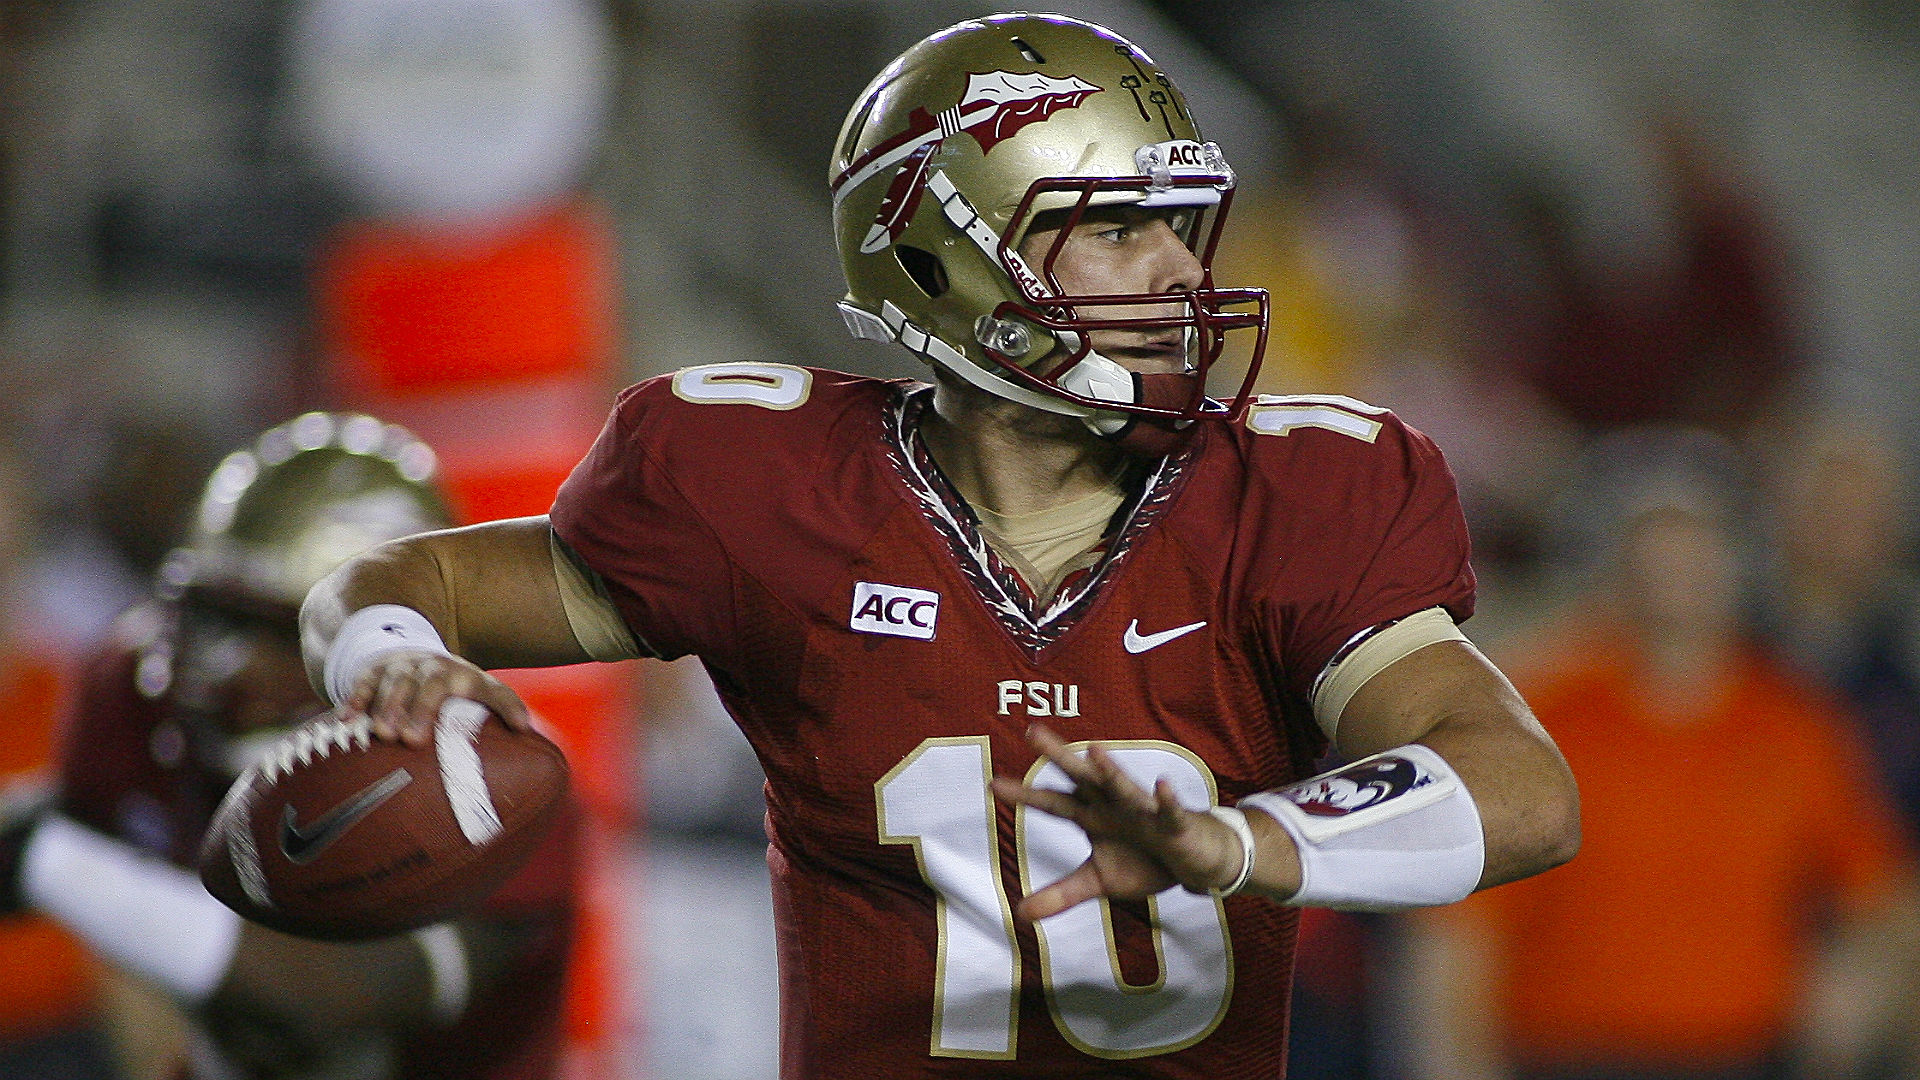 Florida State at Florida betting lines and pick - 'Noles lay points in The Swamp